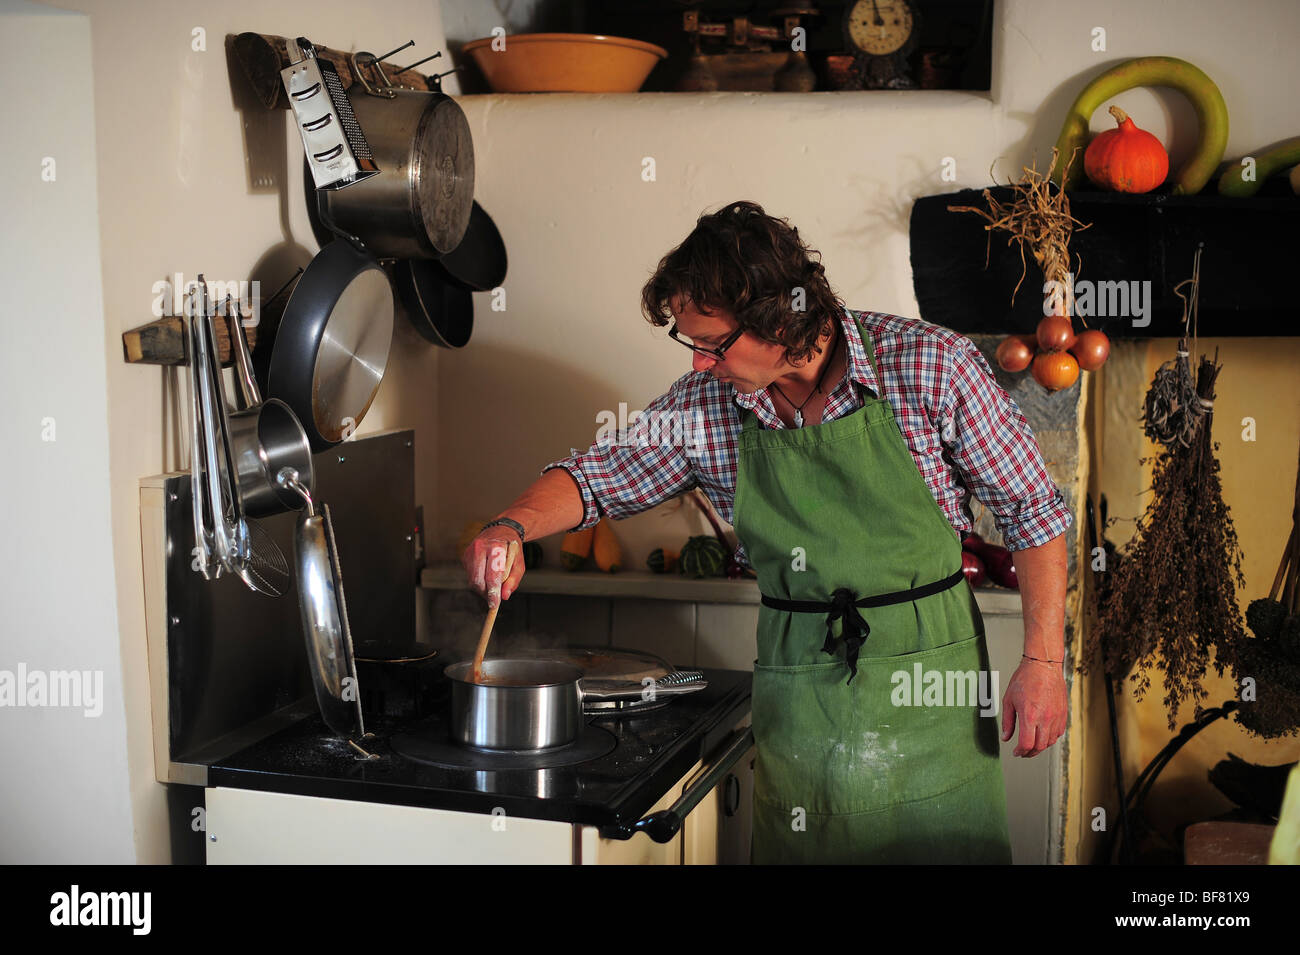 hugh fearnley whittingstall pictured at River Cottage HQ preparing food at the cooker in the kitchen - Stock Image